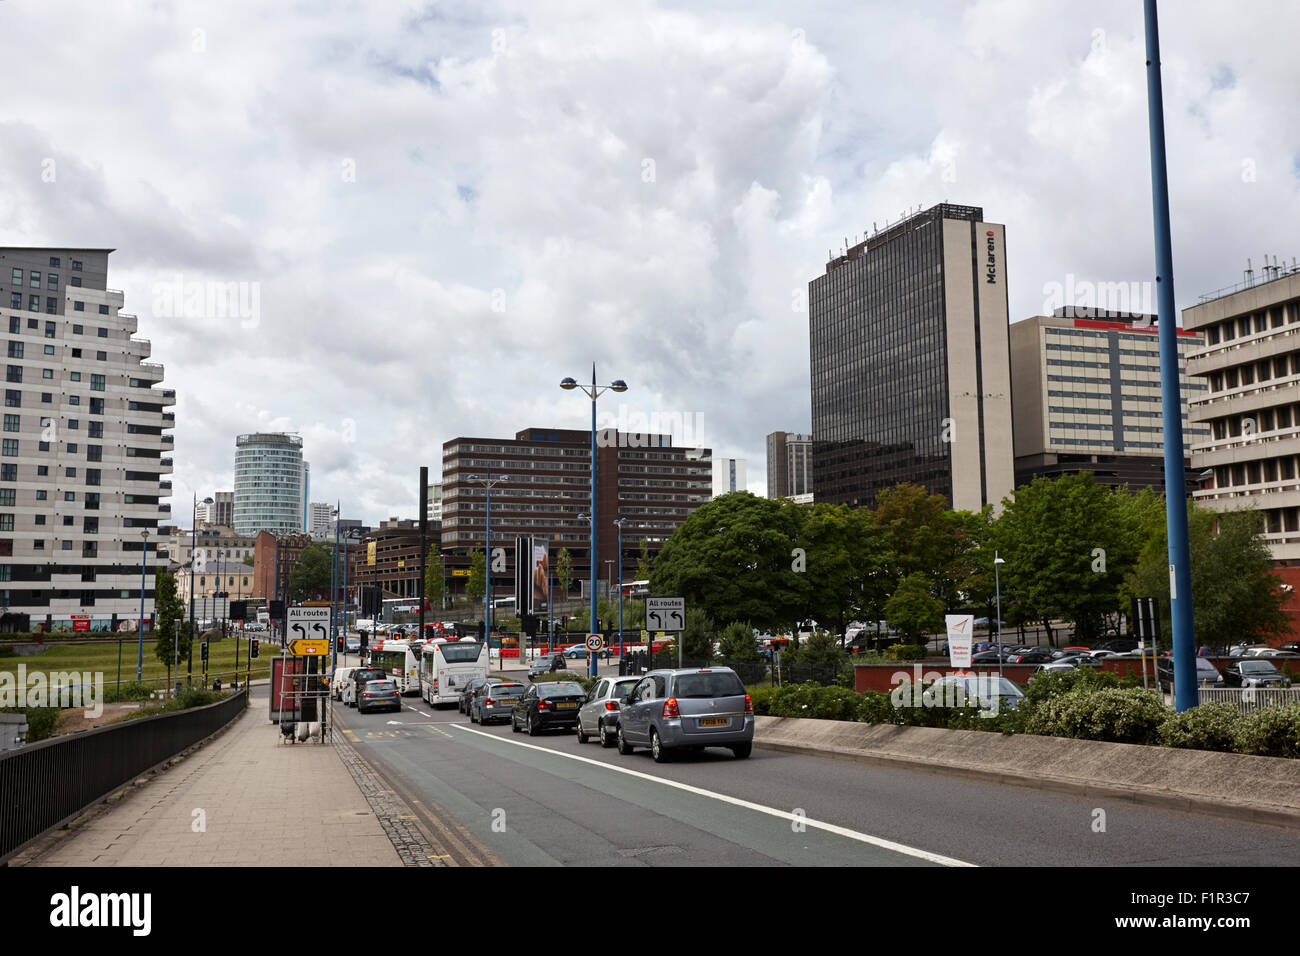 jennens road from eastside to Birmingham city centre UK - Stock Image